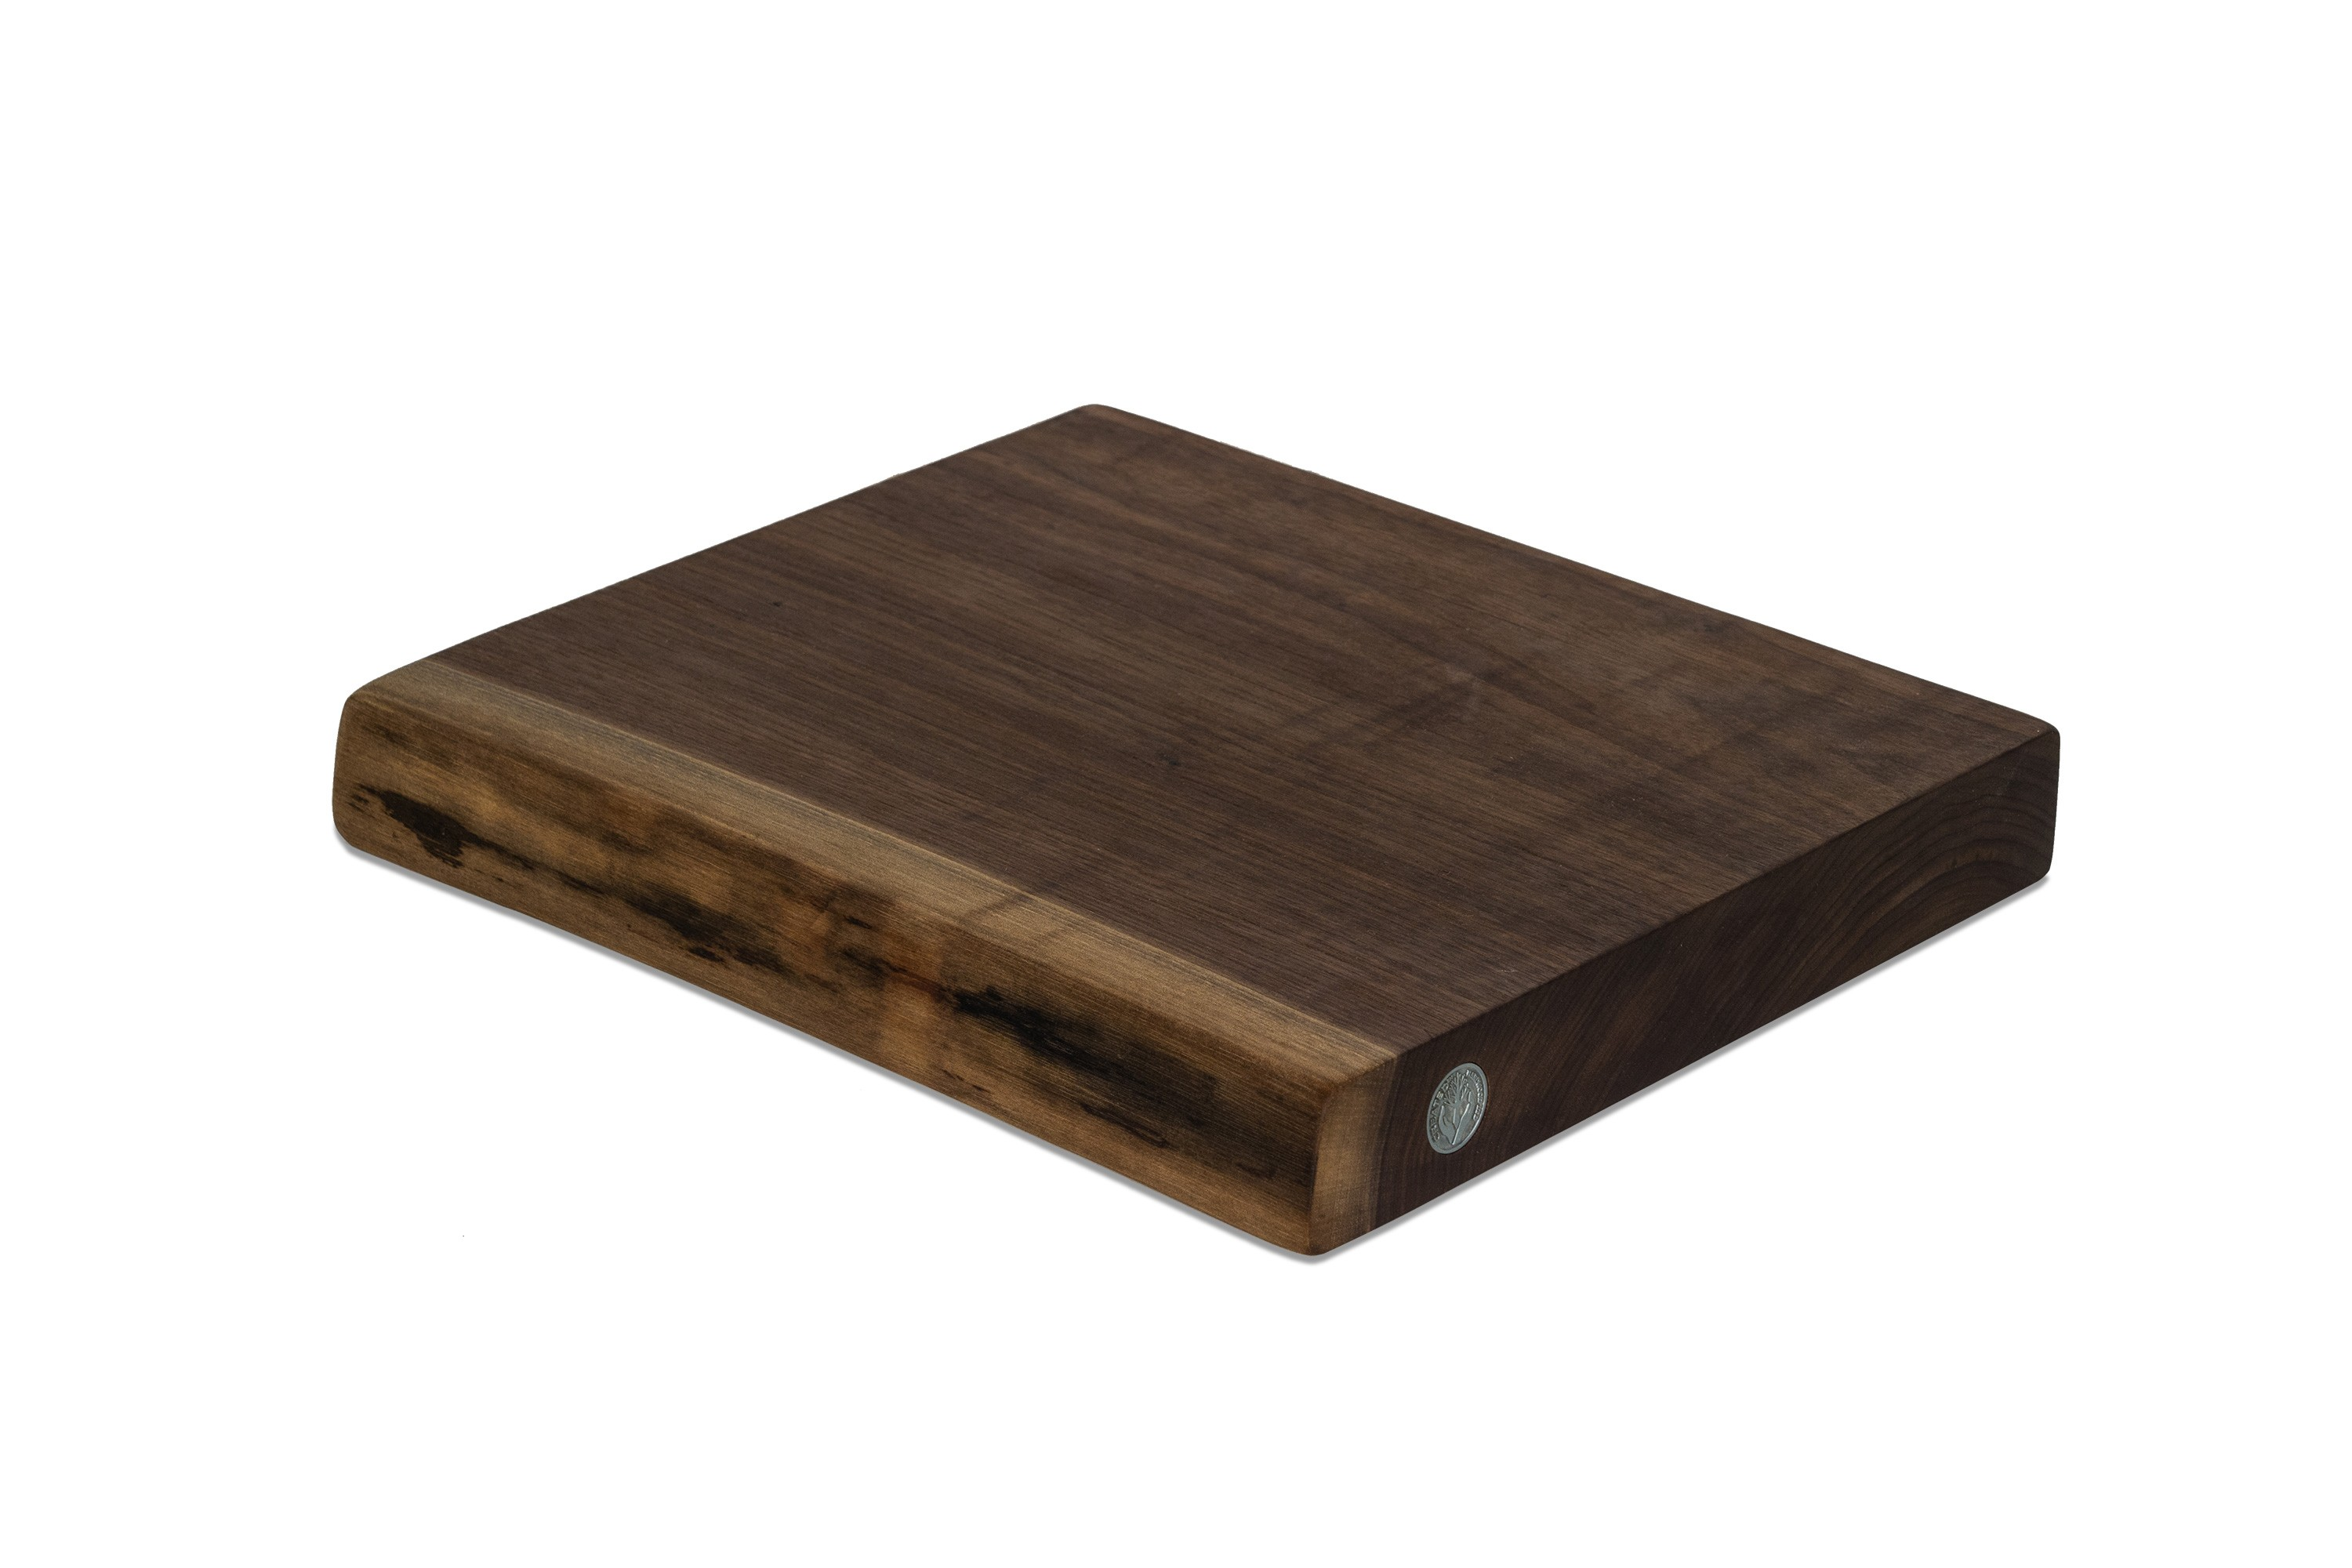 Live Edge Walnut Cutting Board #109 - 15